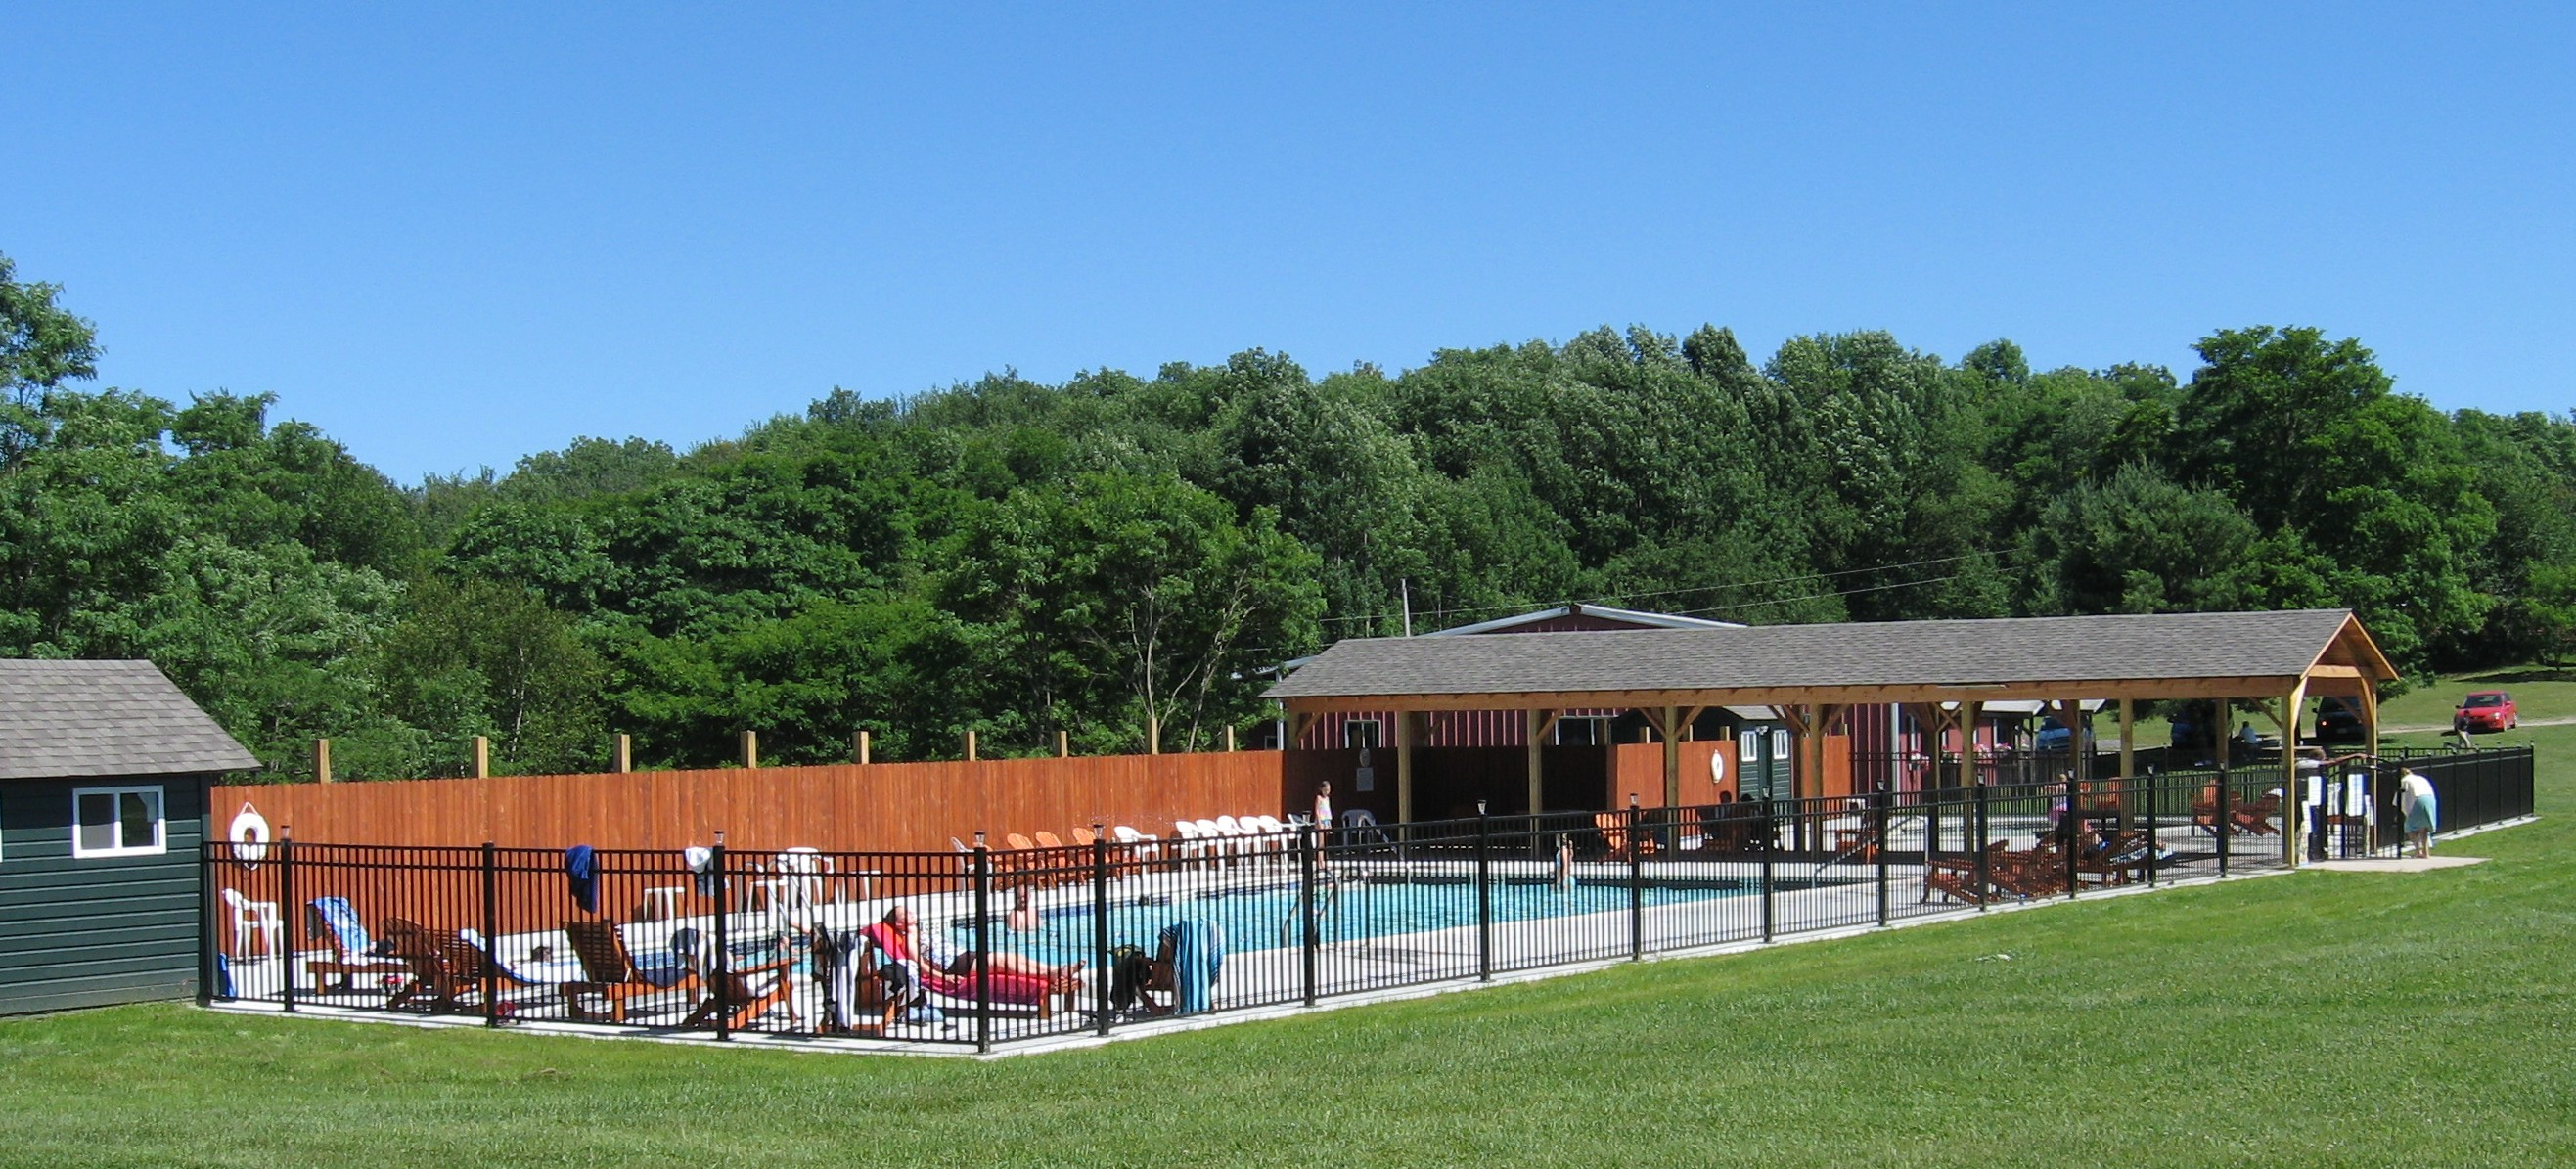 Solar-heated Pool and Wading Pool